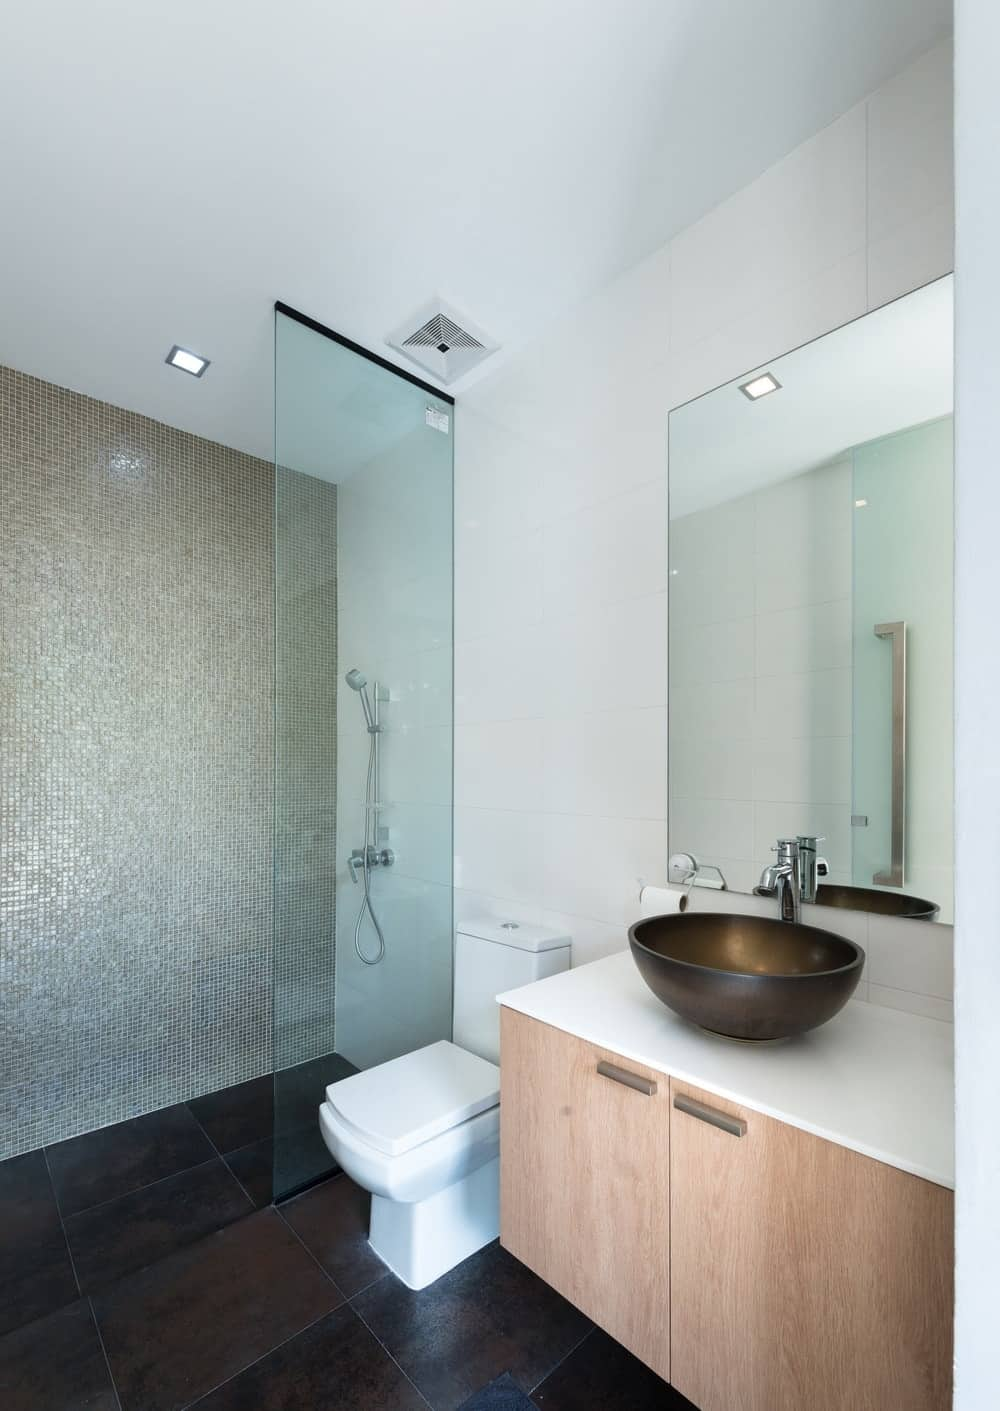 This bathroom has a glass-enclosed shower area on the side of the toilet with a dark floor.